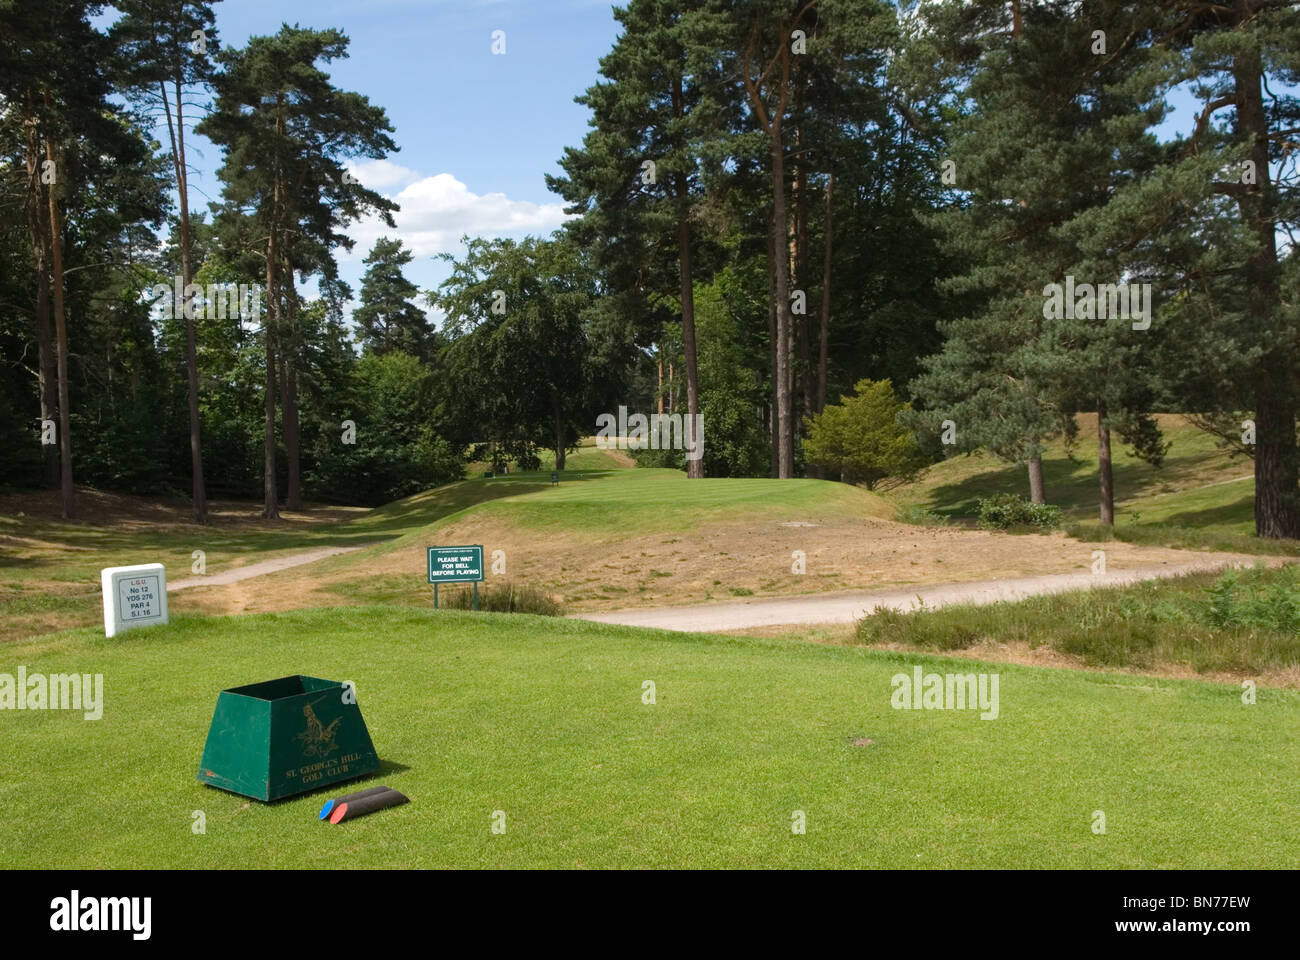 St Georges Hill Surrey Golf Club. Camp End Road  where the Diggers 1649 formed community  HOMER SYKES - Stock Image